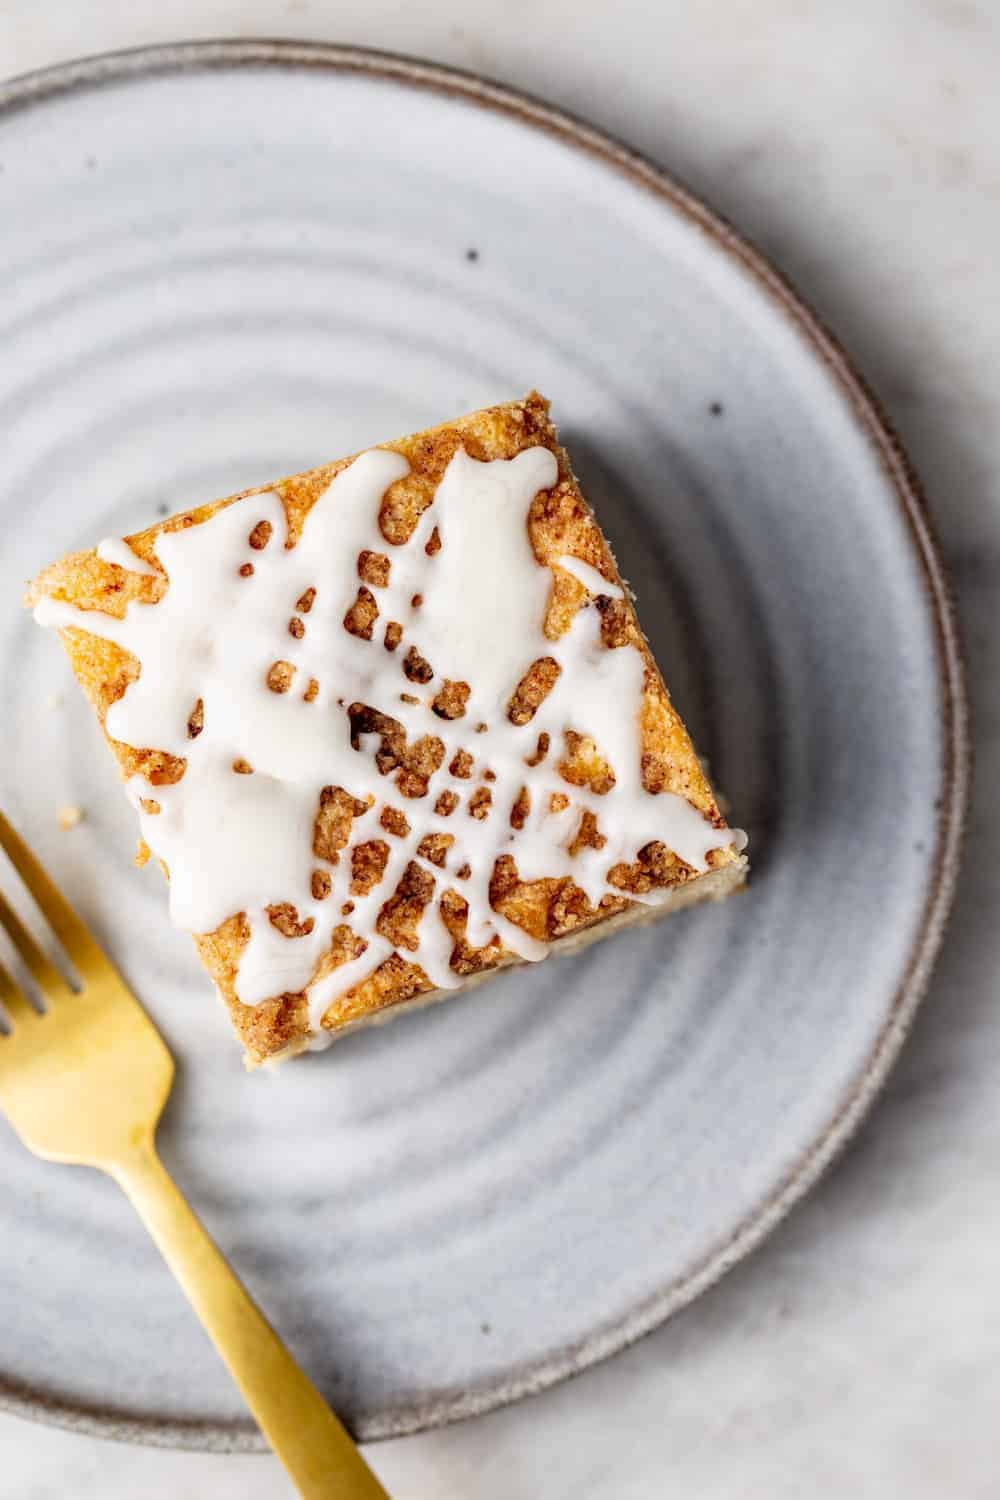 Overhead view of a slice of cinnamon coffee cake with vanilla glaze on a white plate next to a gold fork